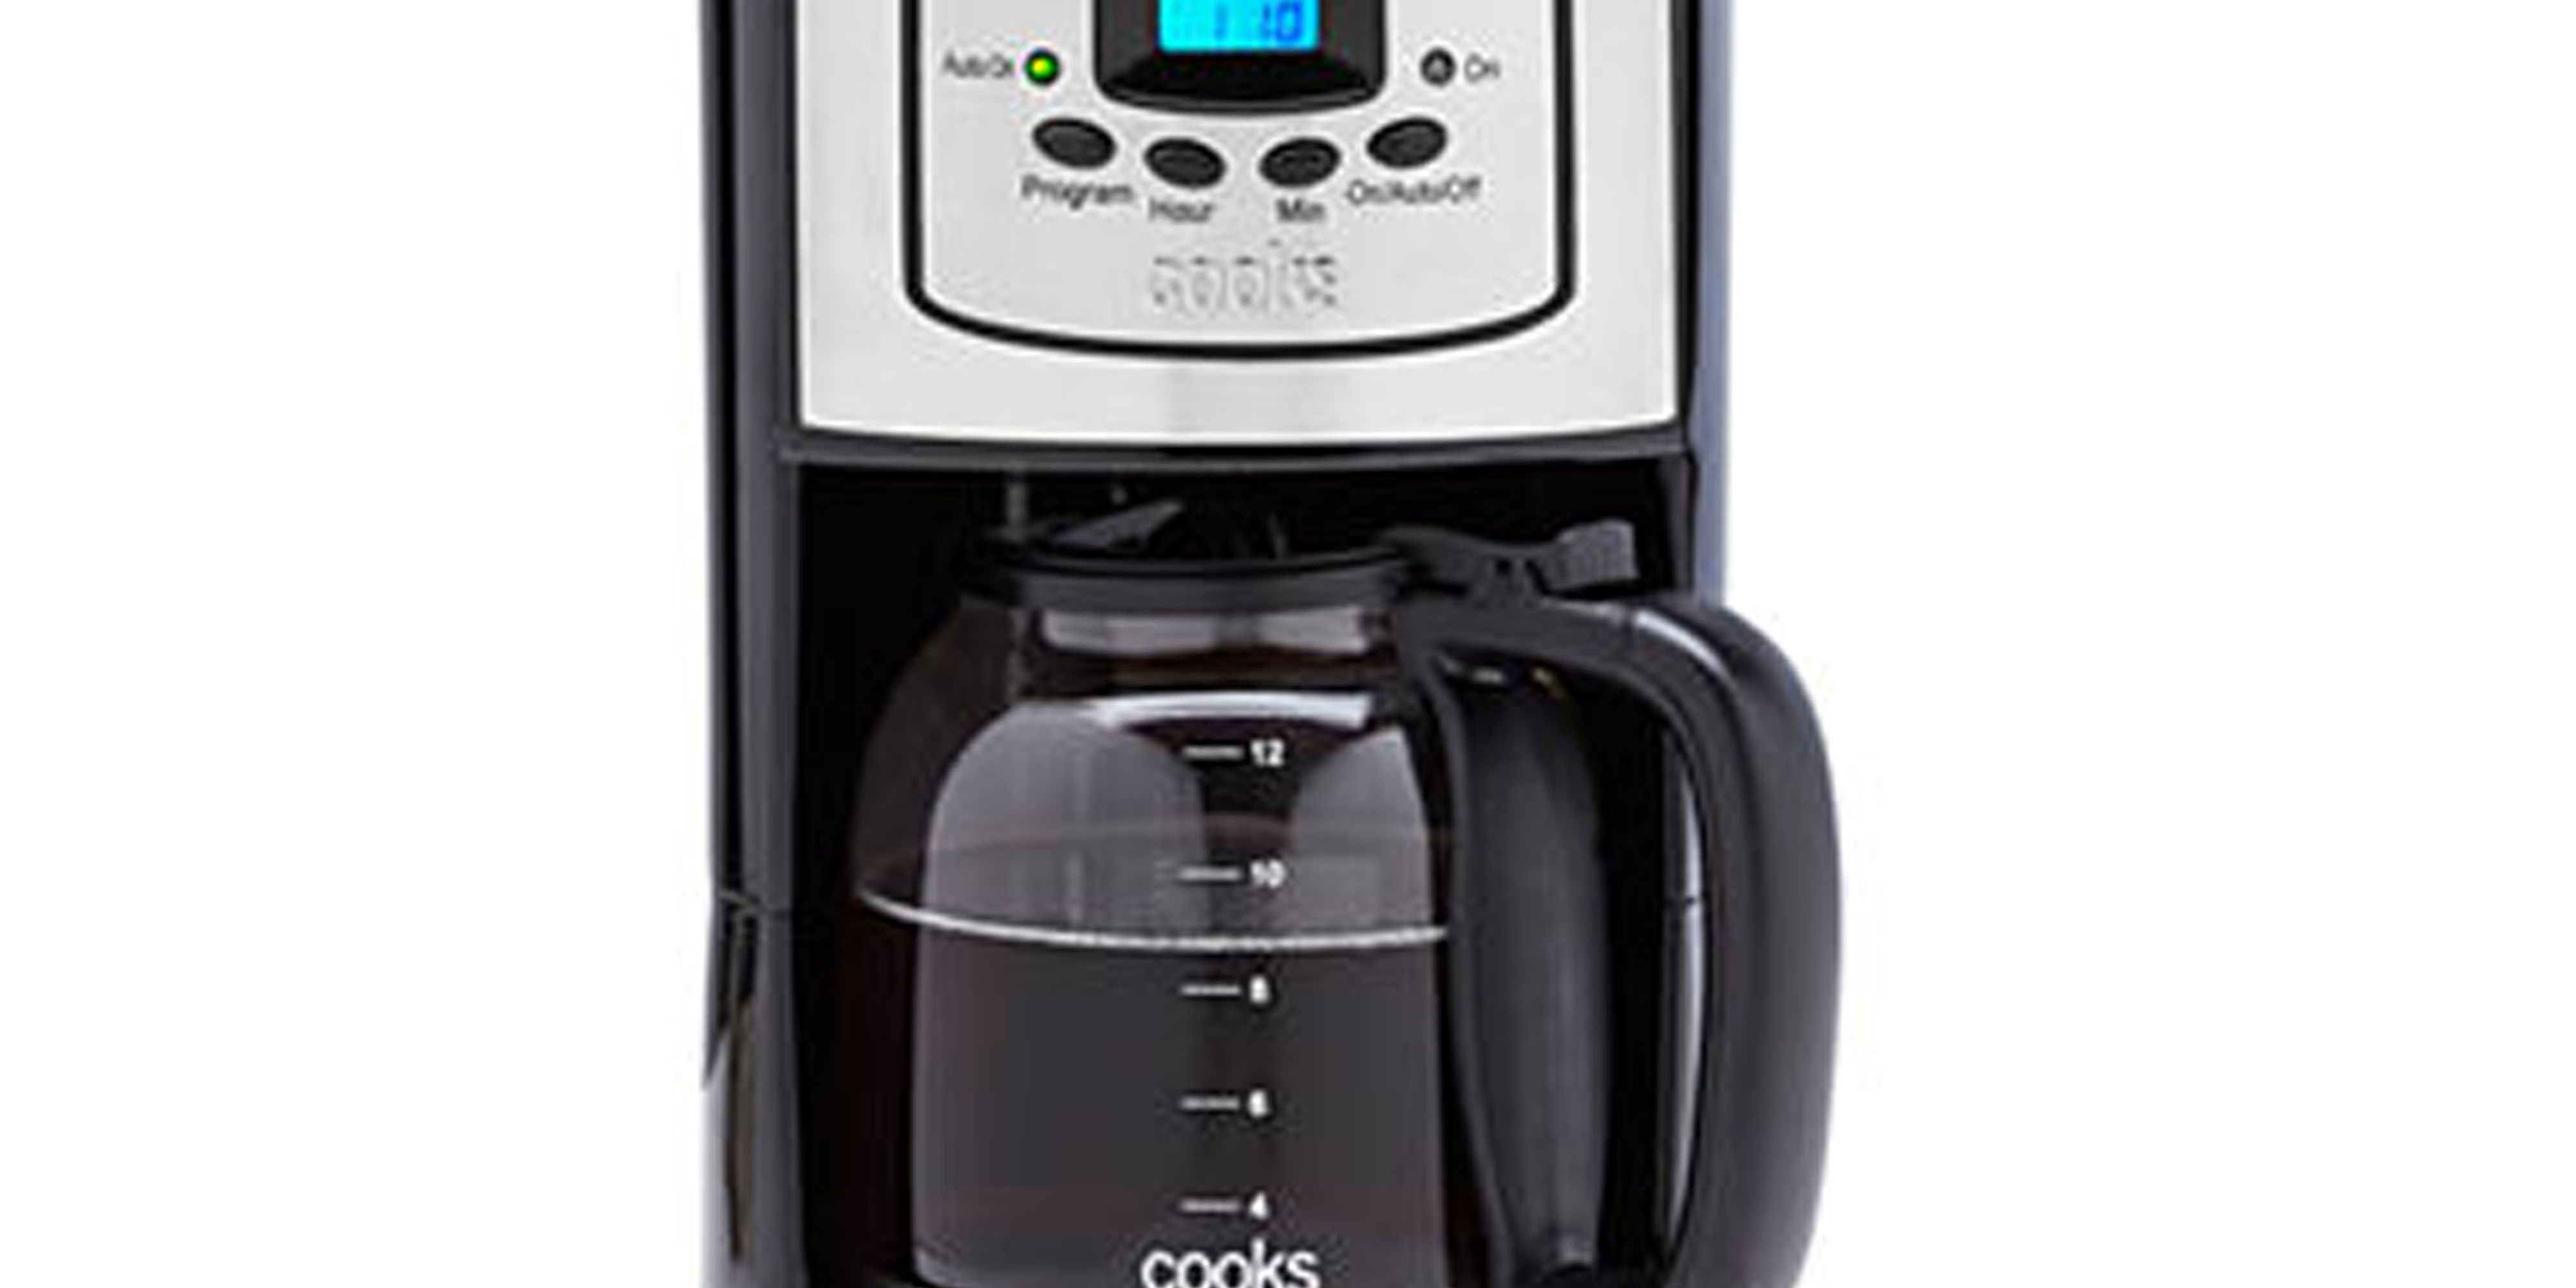 cooks 12 cup coffeemaker review price and features rh goodhousekeeping com Cooks Coffee Maker Programmable Cooks Coffee Maker Programmable